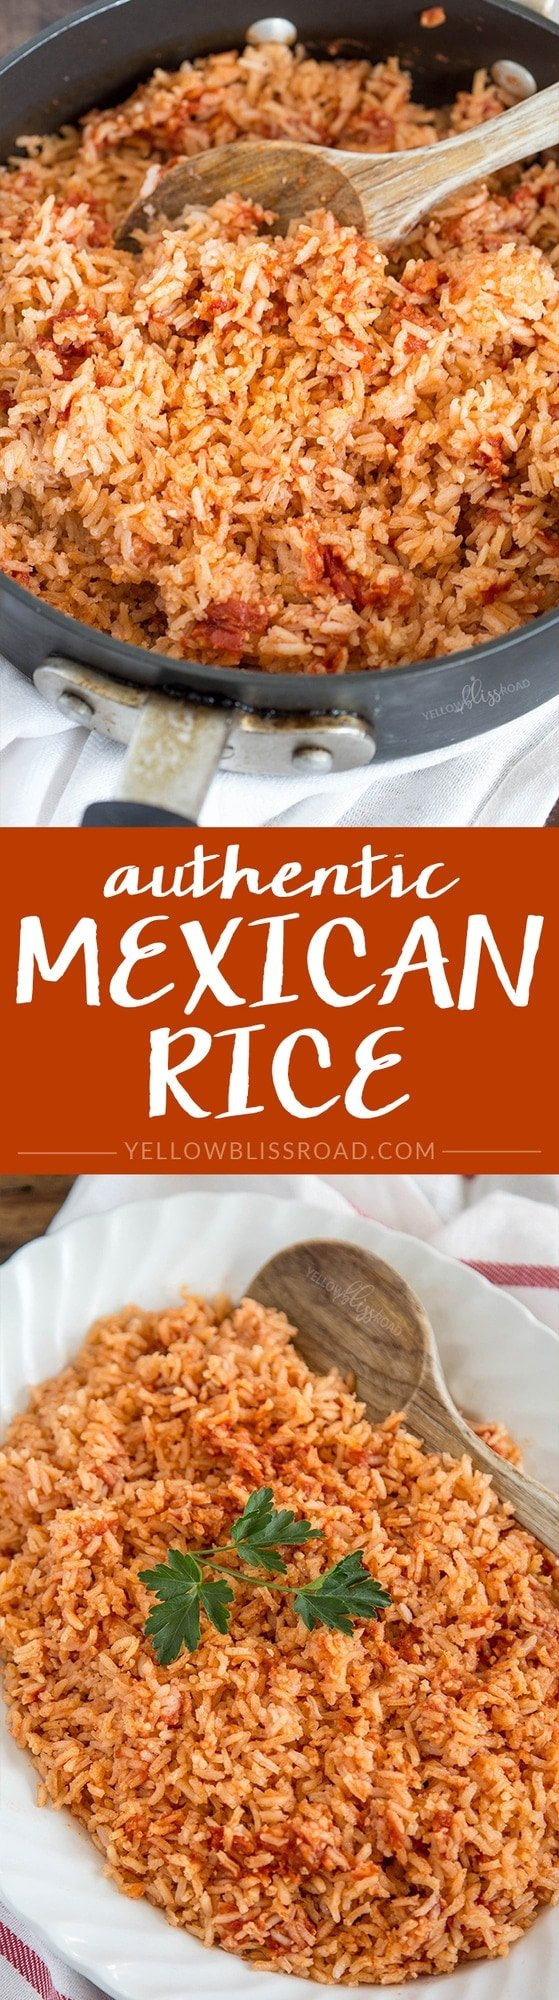 Authentic Mexican Rice Recipe Yellowblissroad Com